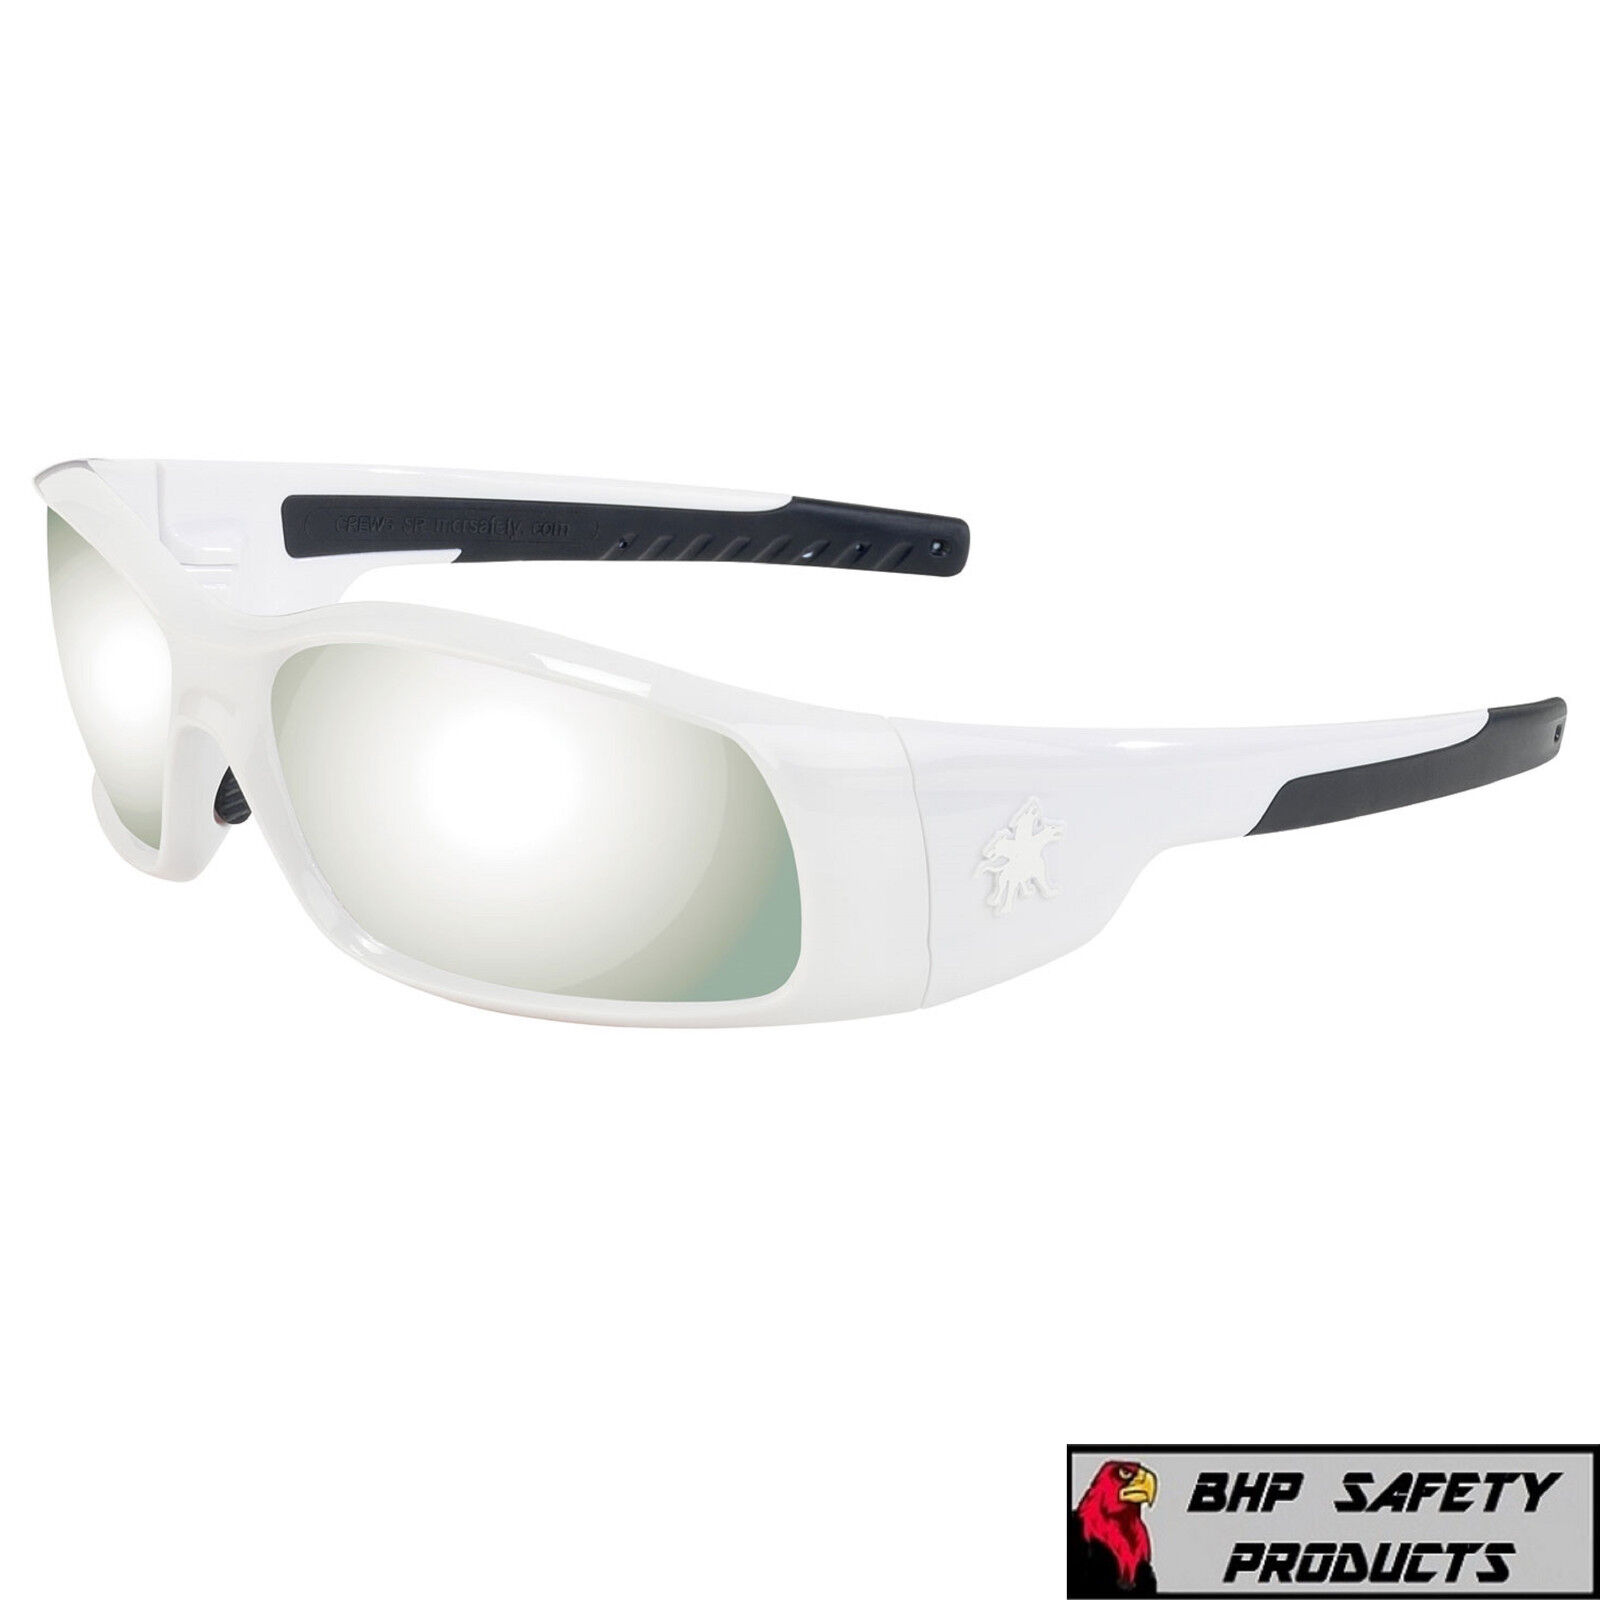 MCR CREWS SWAGGER SAFETY GLASSES SUNGLASSES WORK SPORT EYEWEAR CHOOSE YOUR COLOR